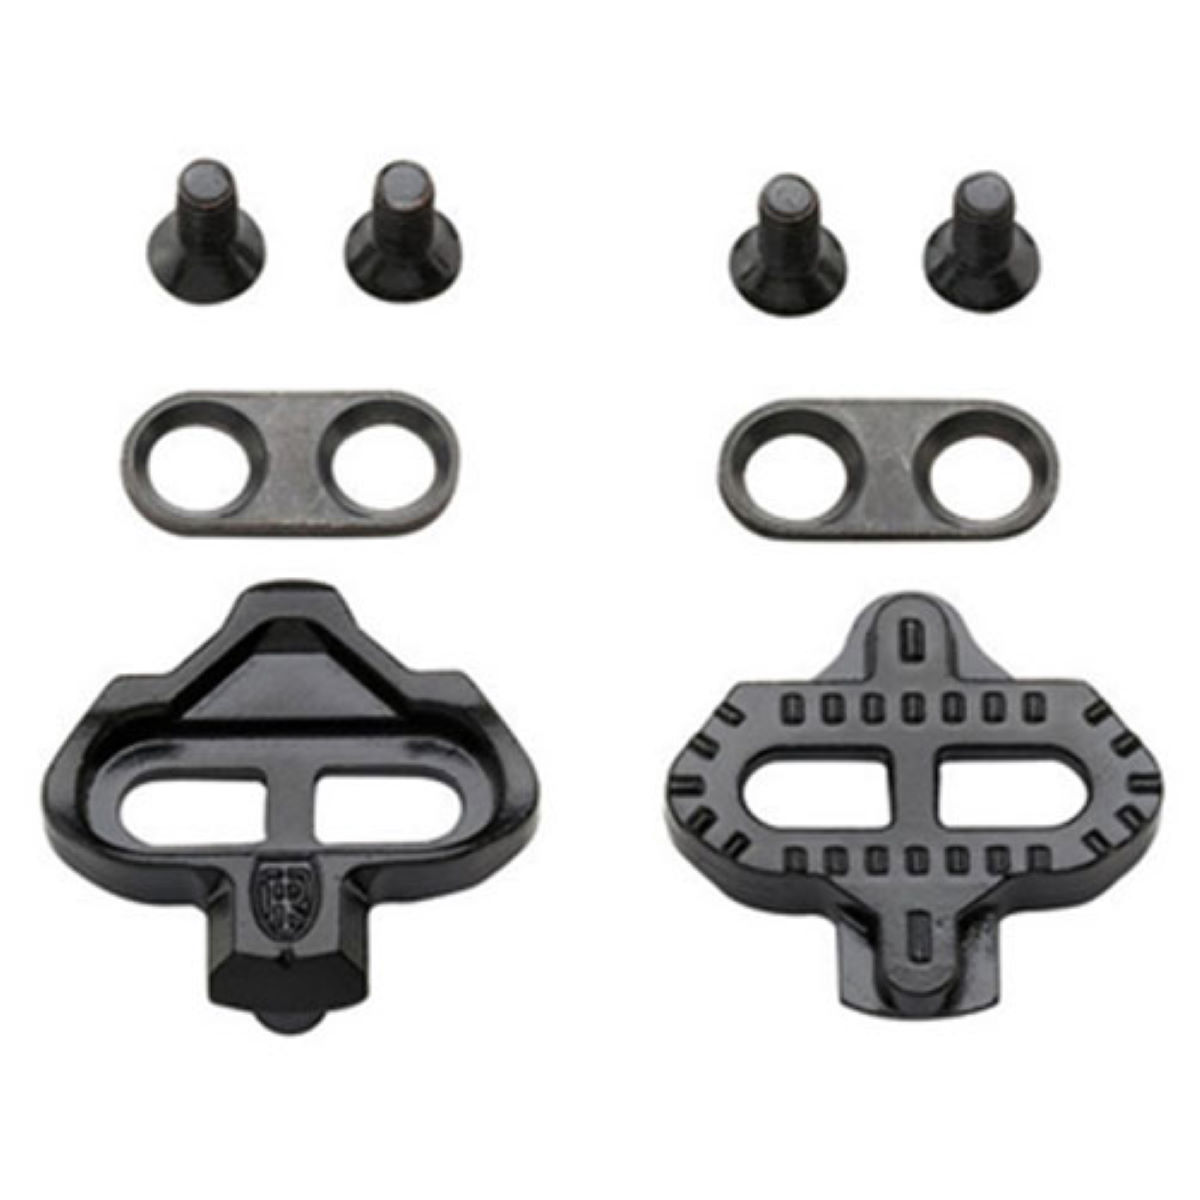 Ritchey Ritchey Pro Micro V4 Road Pedal Cleats   Cleats